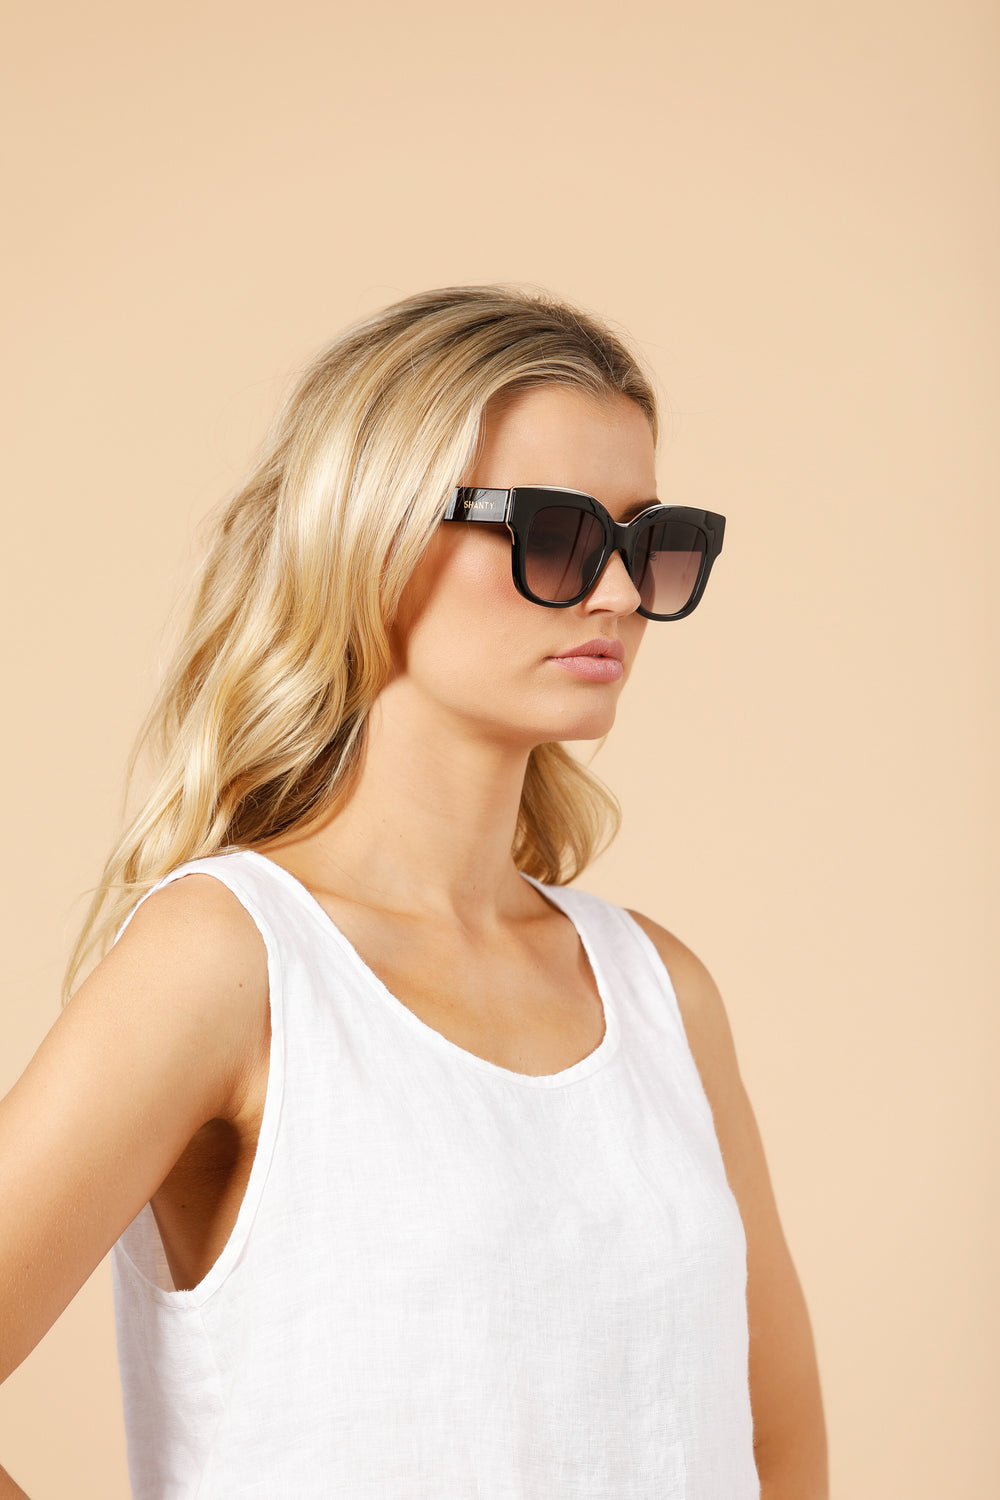 Seville Sunglasses in Black By Shanty